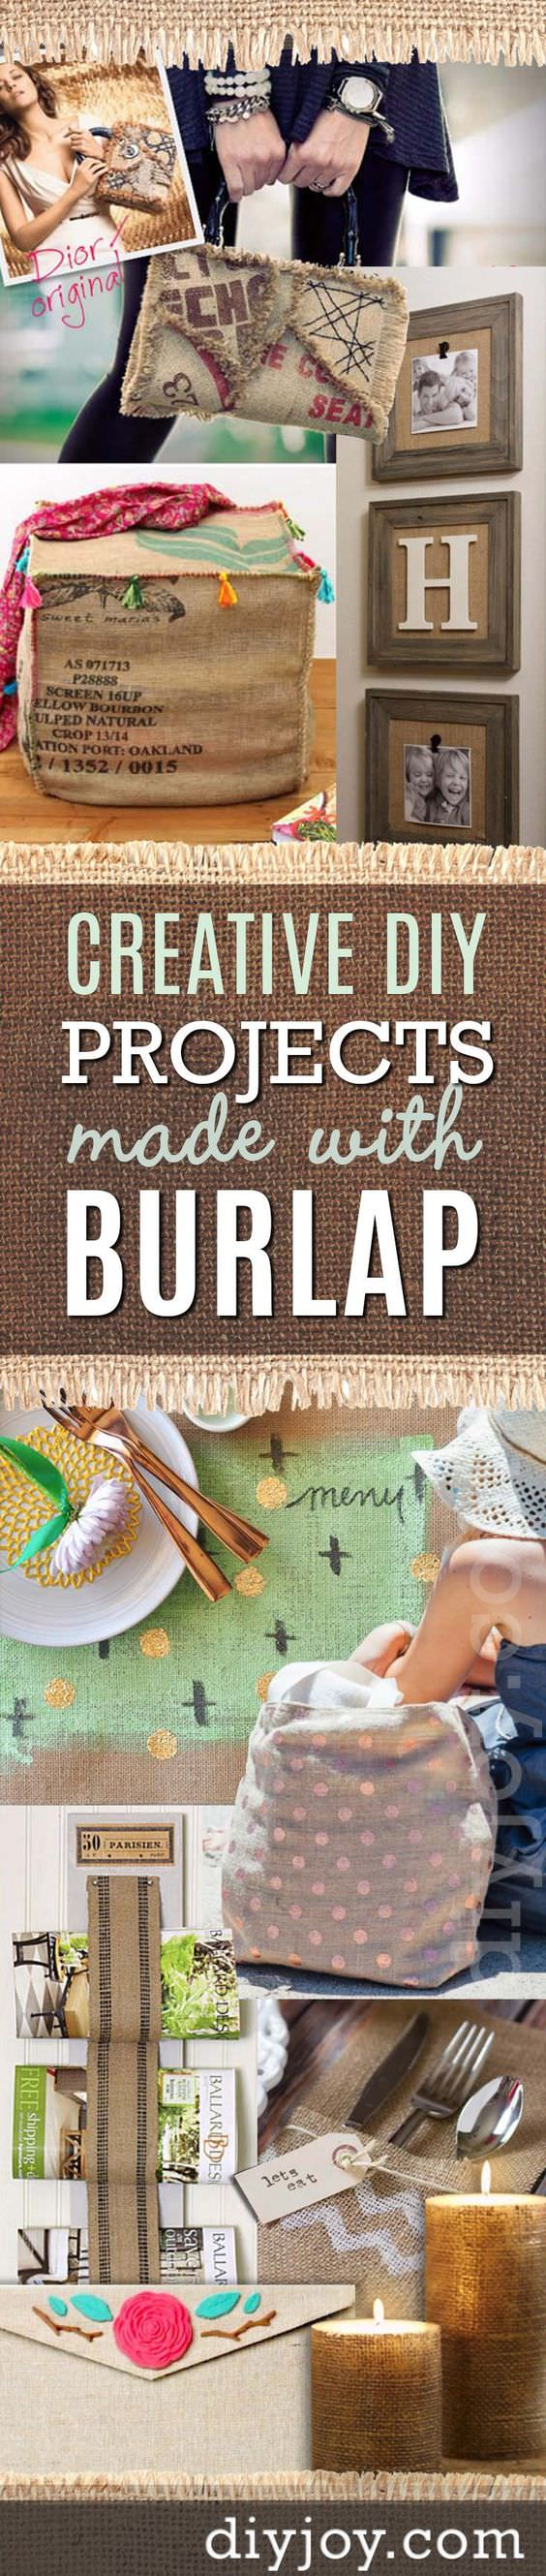 Burlaps can they be useful? Oh yes! In fact, there are so many DIY burlap projects and ideas to get inspired from. Check out!